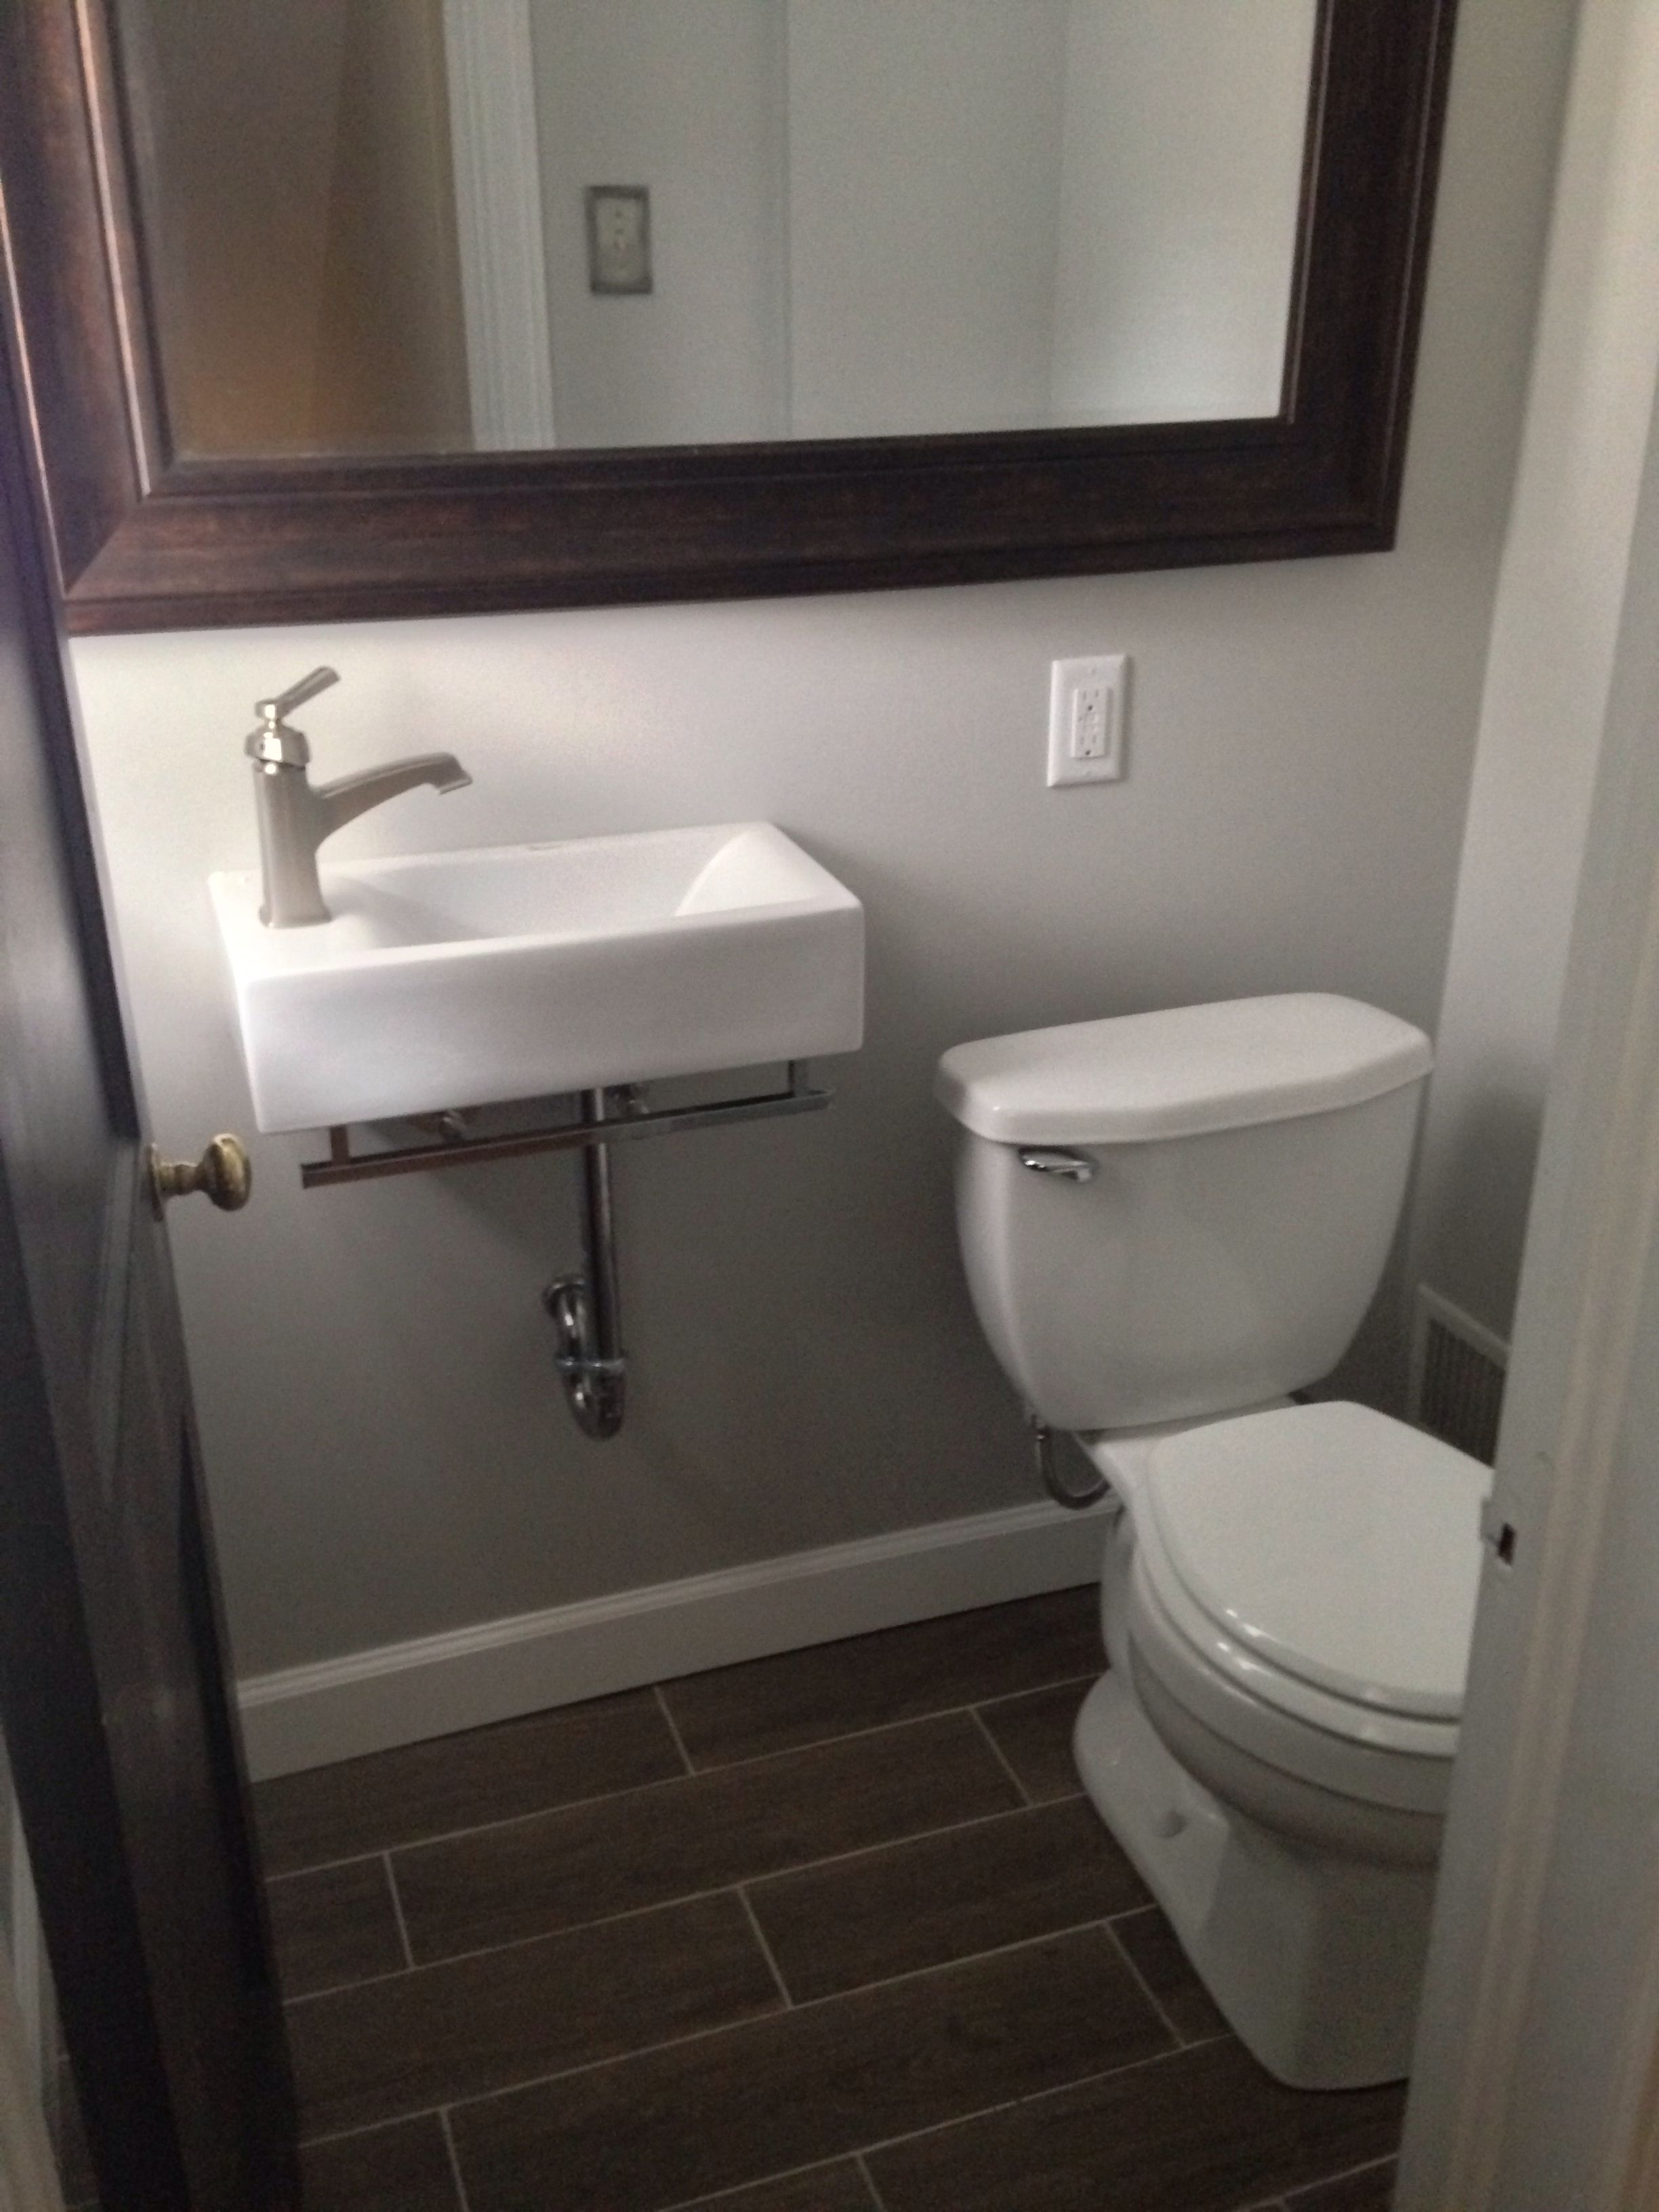 Reno Of Small 3X4 Bathroom